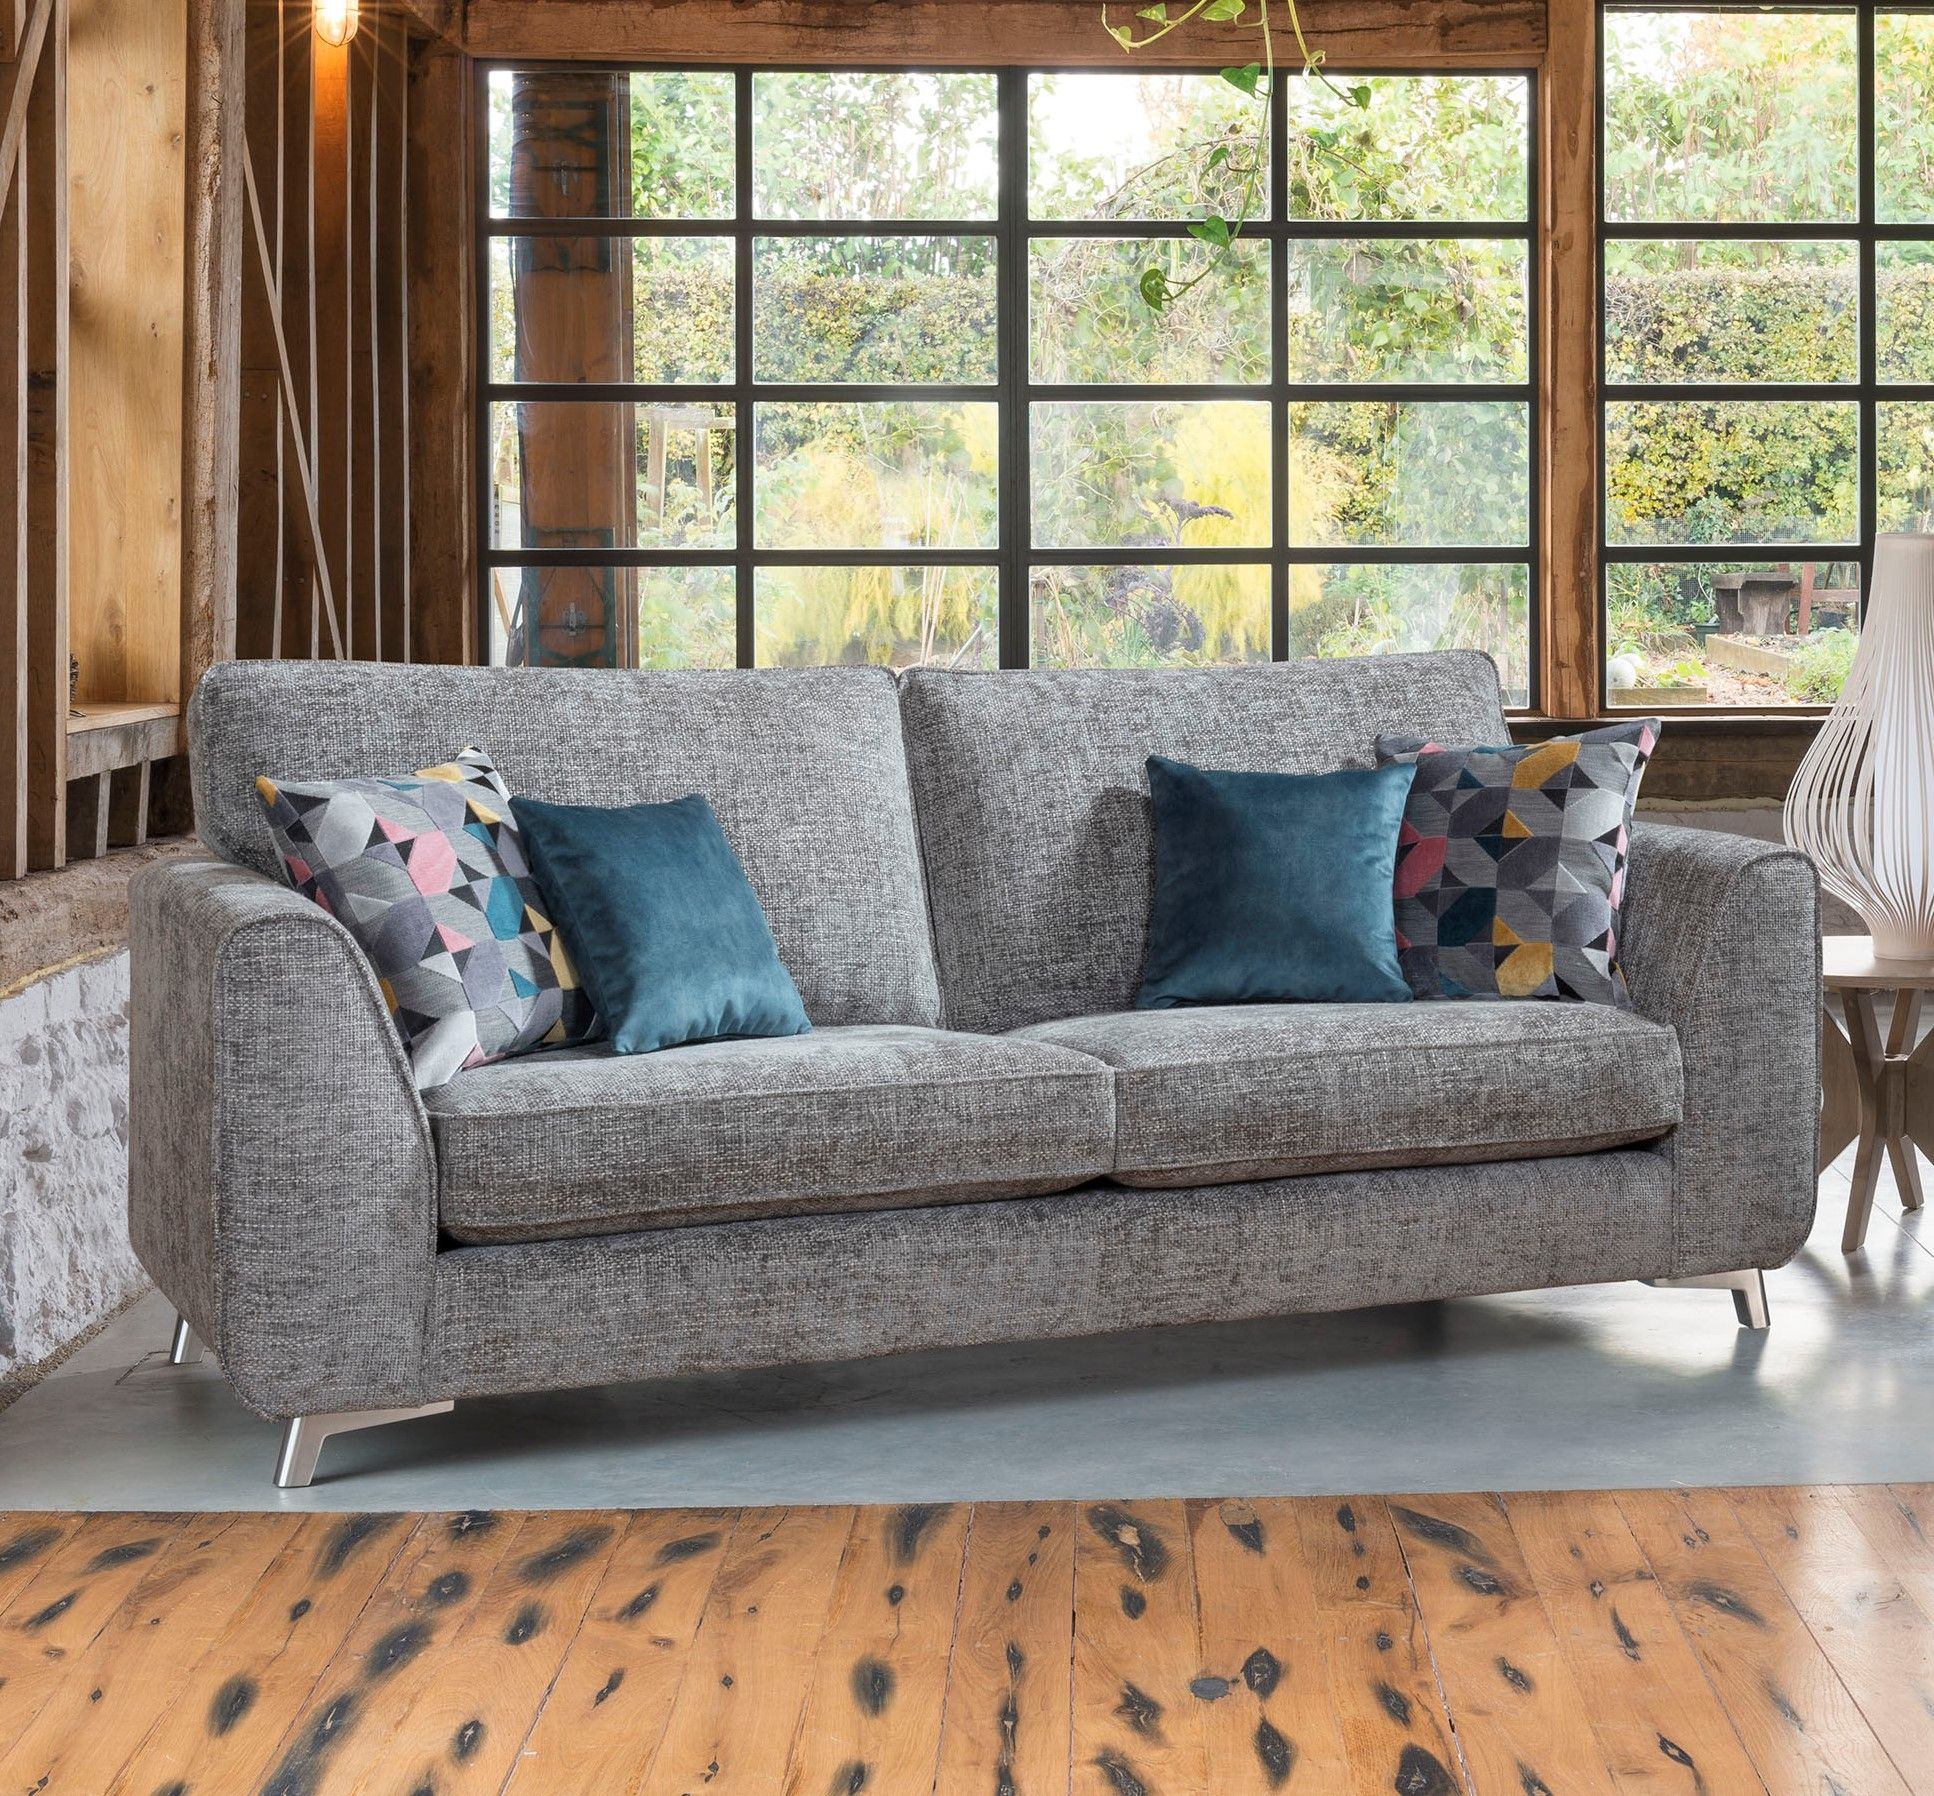 Stockholm Sofa Gallery Of Stockholm Light Grey Seater